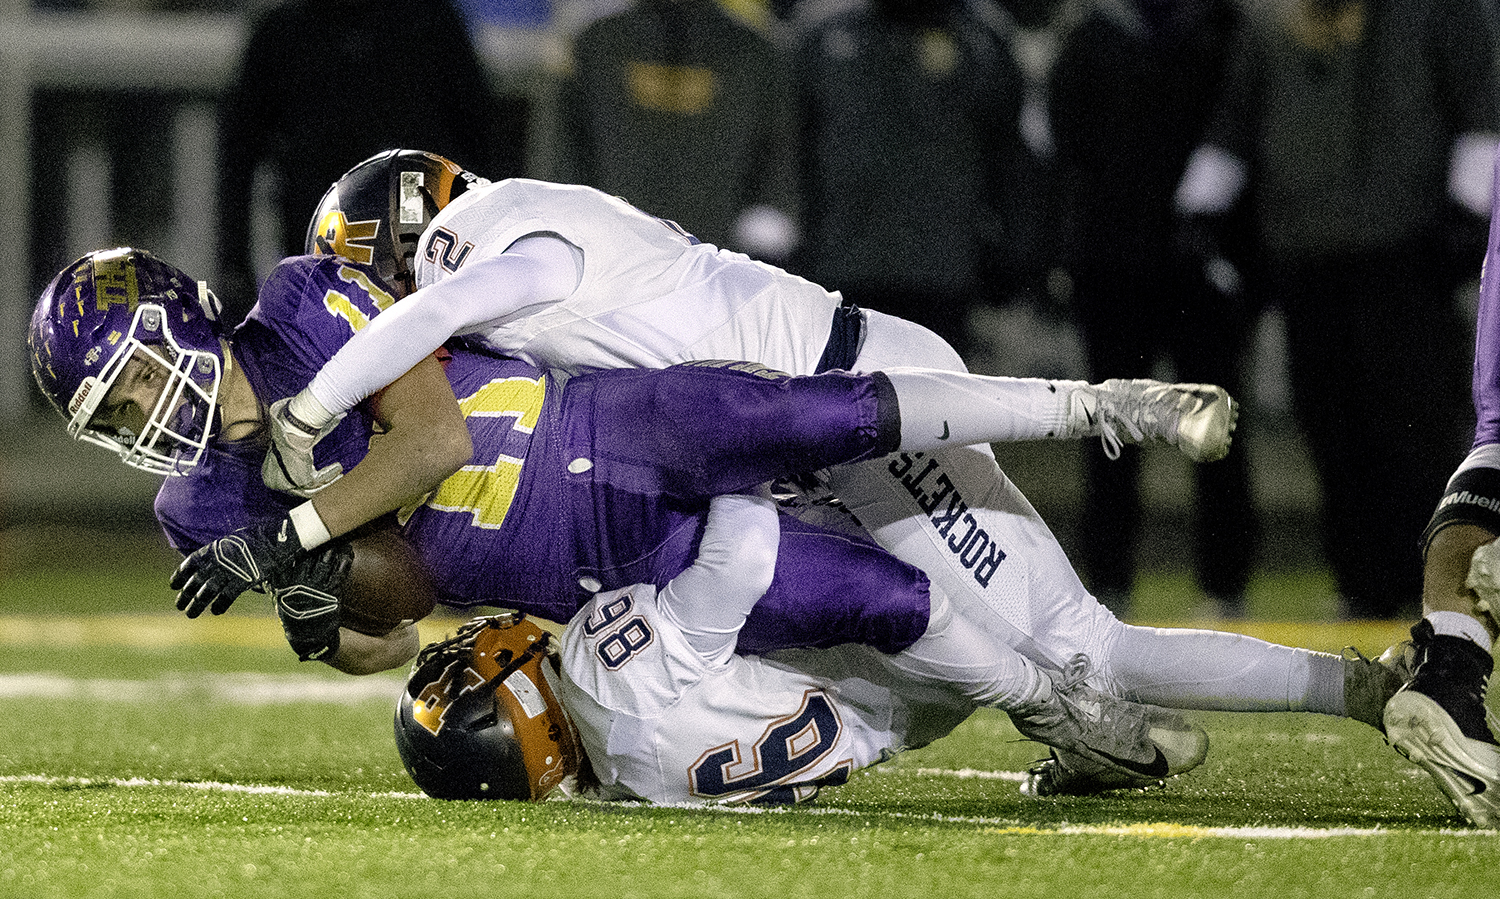 Taylorville's Brandon Odam is brought down by Rochester's Colton Rowden and Talon Williams during the Class 4A quarterfinals in Taylorville Saturday, Nov. 10, 2018. [Ted Schurter/The State Journal-Register]